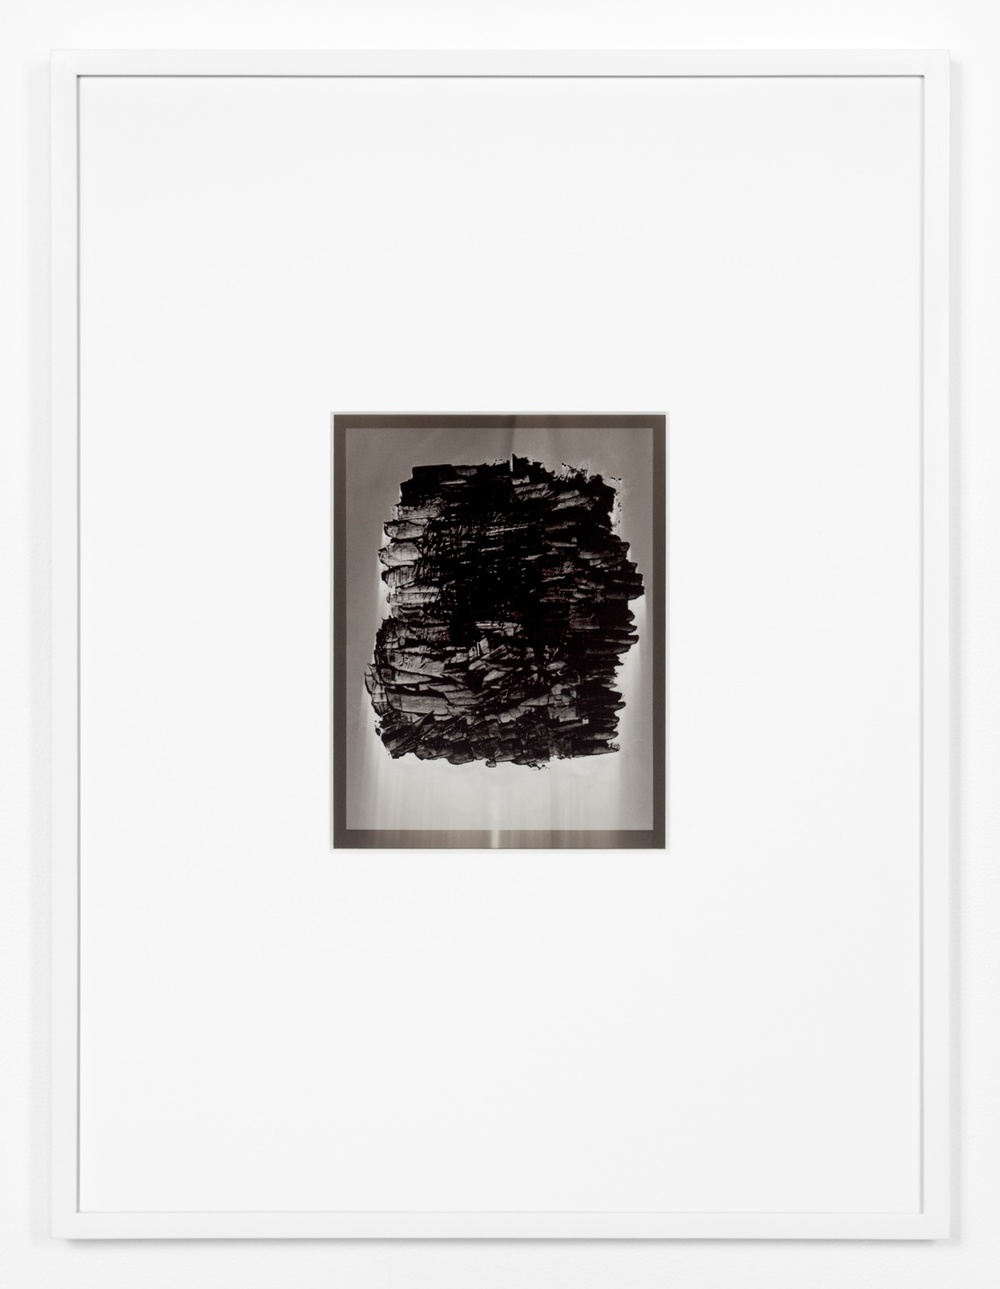 Anthony Pearson  Untitled (Solarization)  2011 Solarized silver gelatin photograph in artist frame 17 ½h x 13 ¼w x ¾d in AP317